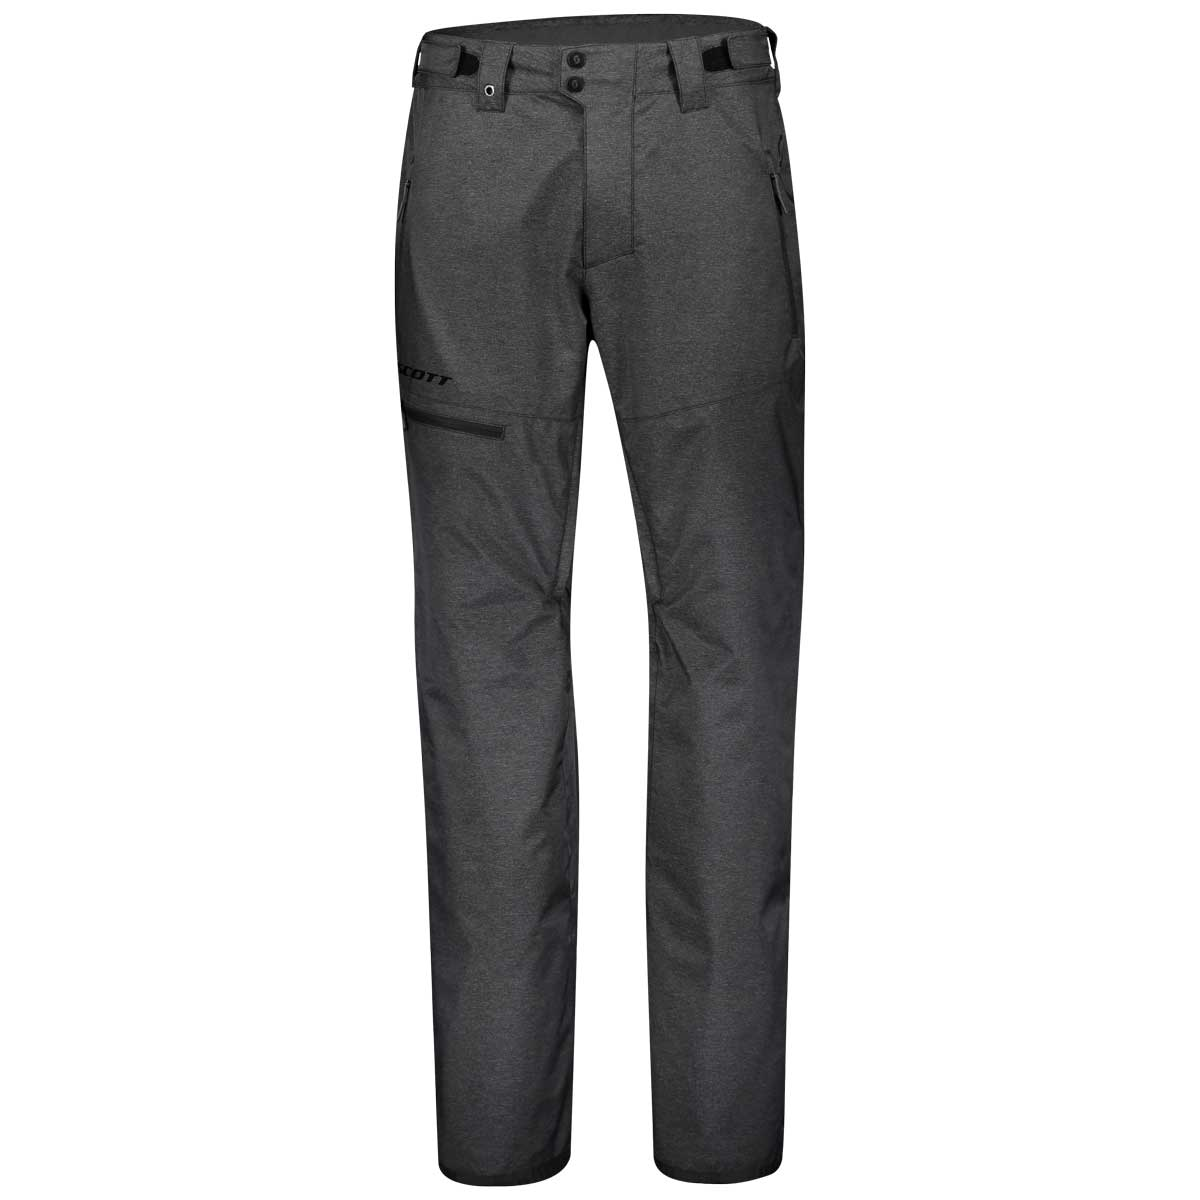 Scott men's ultimate dryo 10 pant in dark grey melange